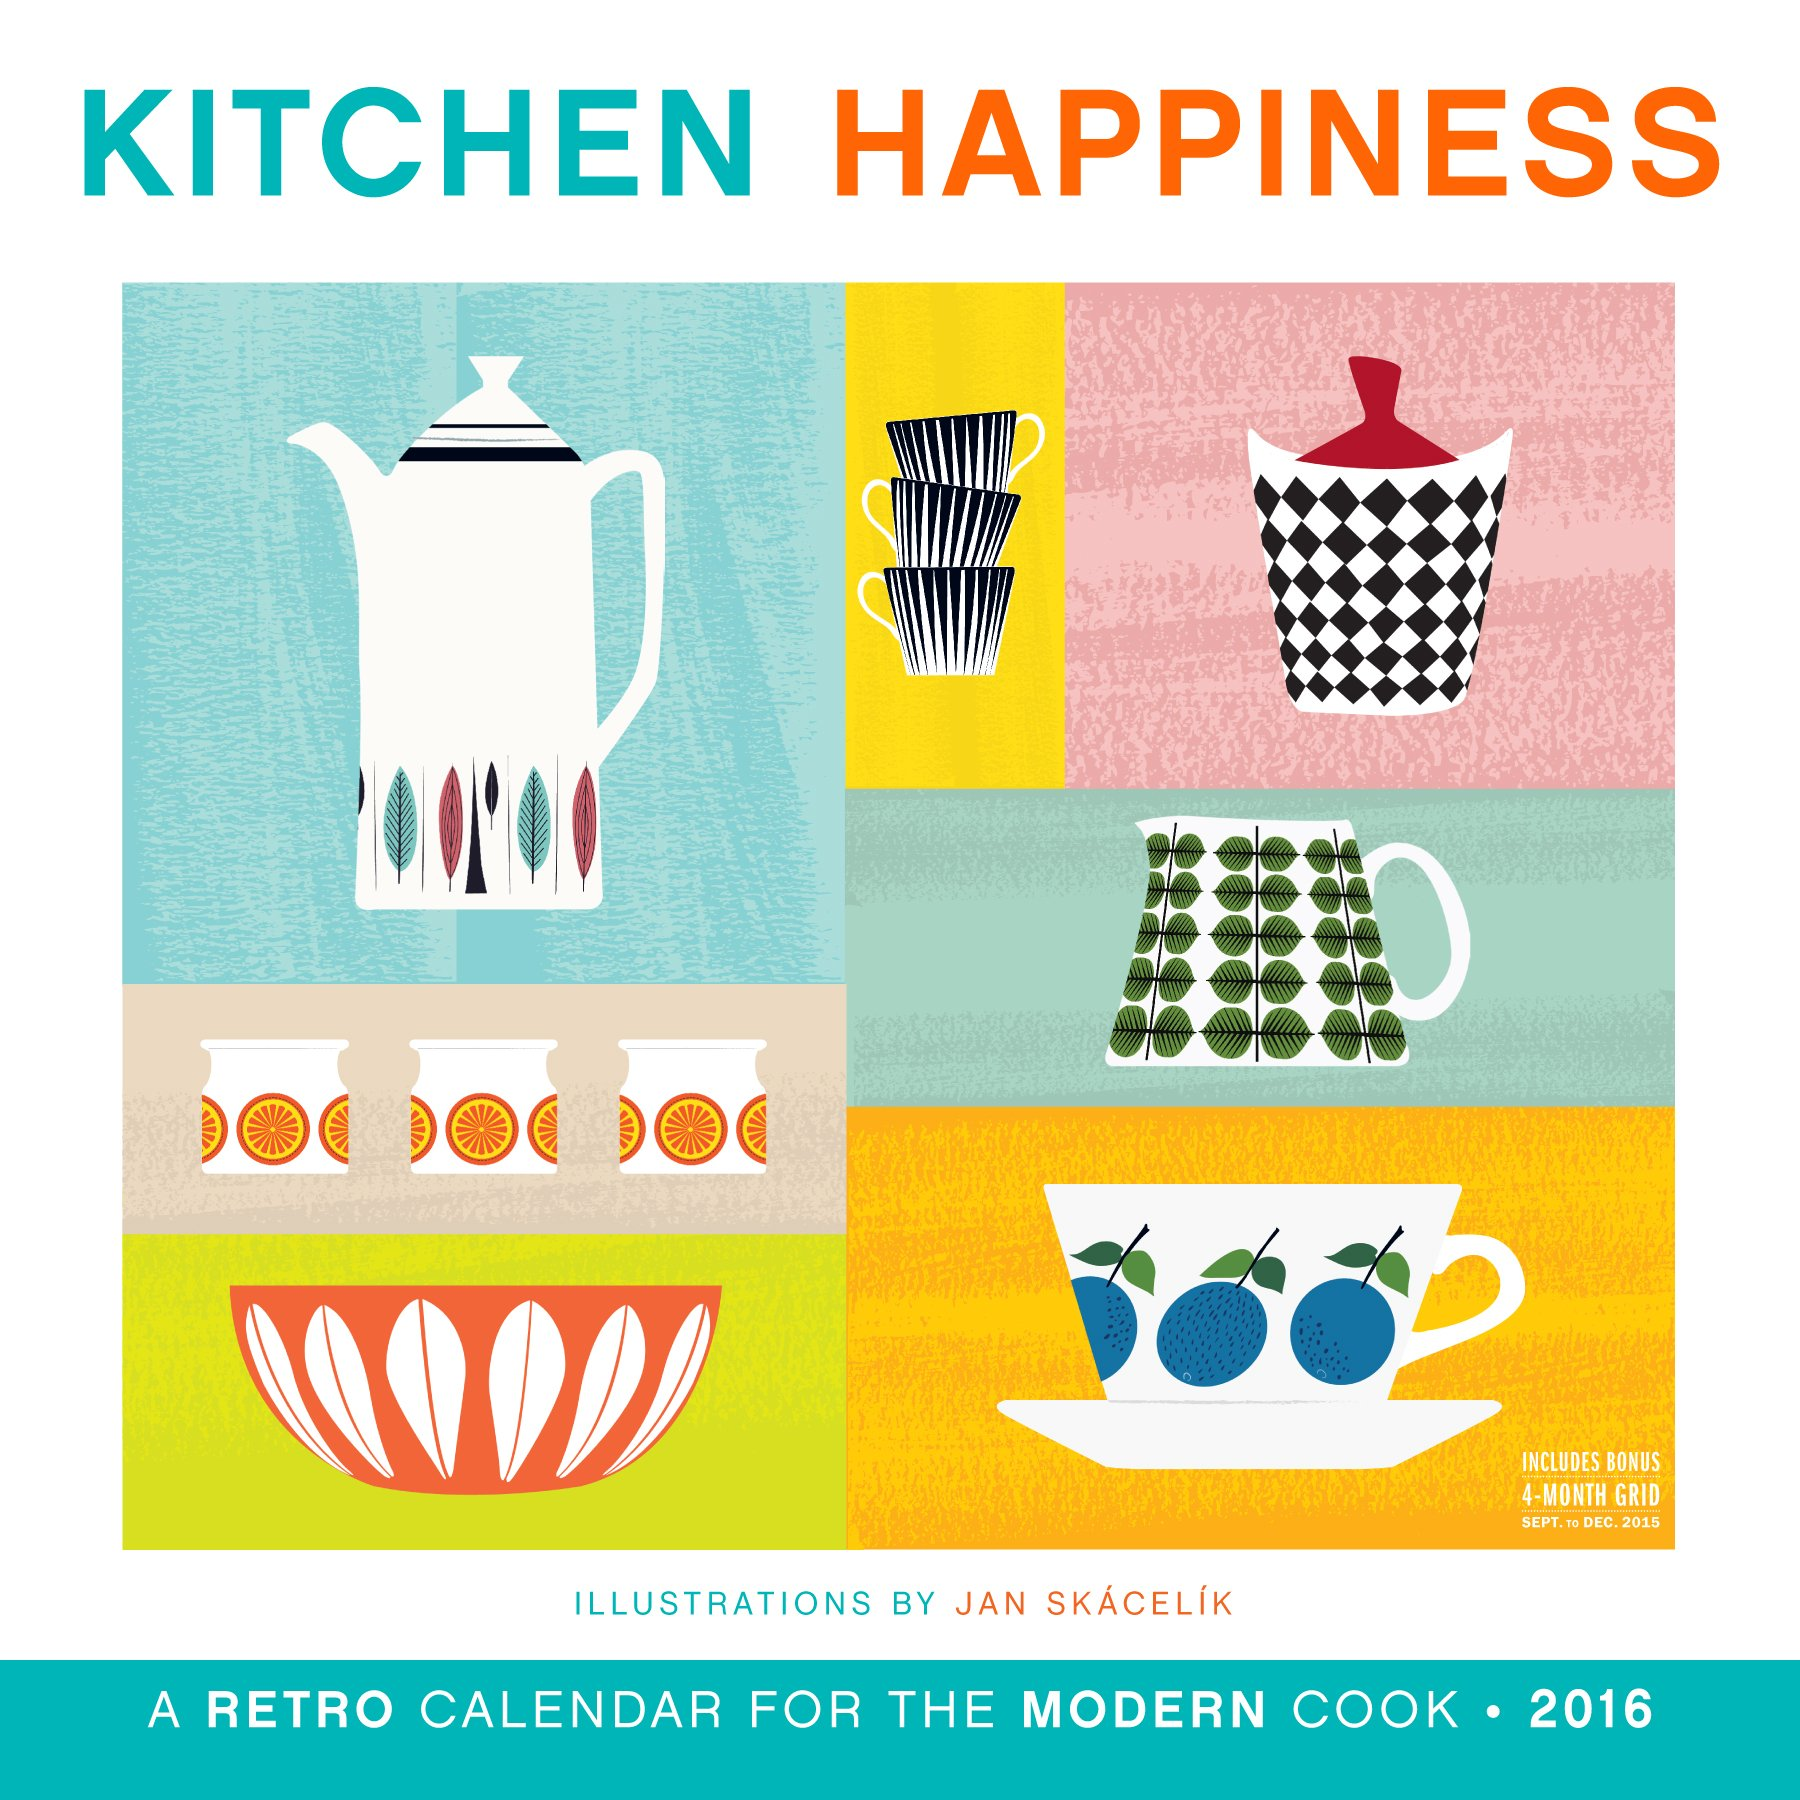 Kitchen Happiness Wall Calendar 2016: Jan Ska´celi´k: 9780761185246 ...